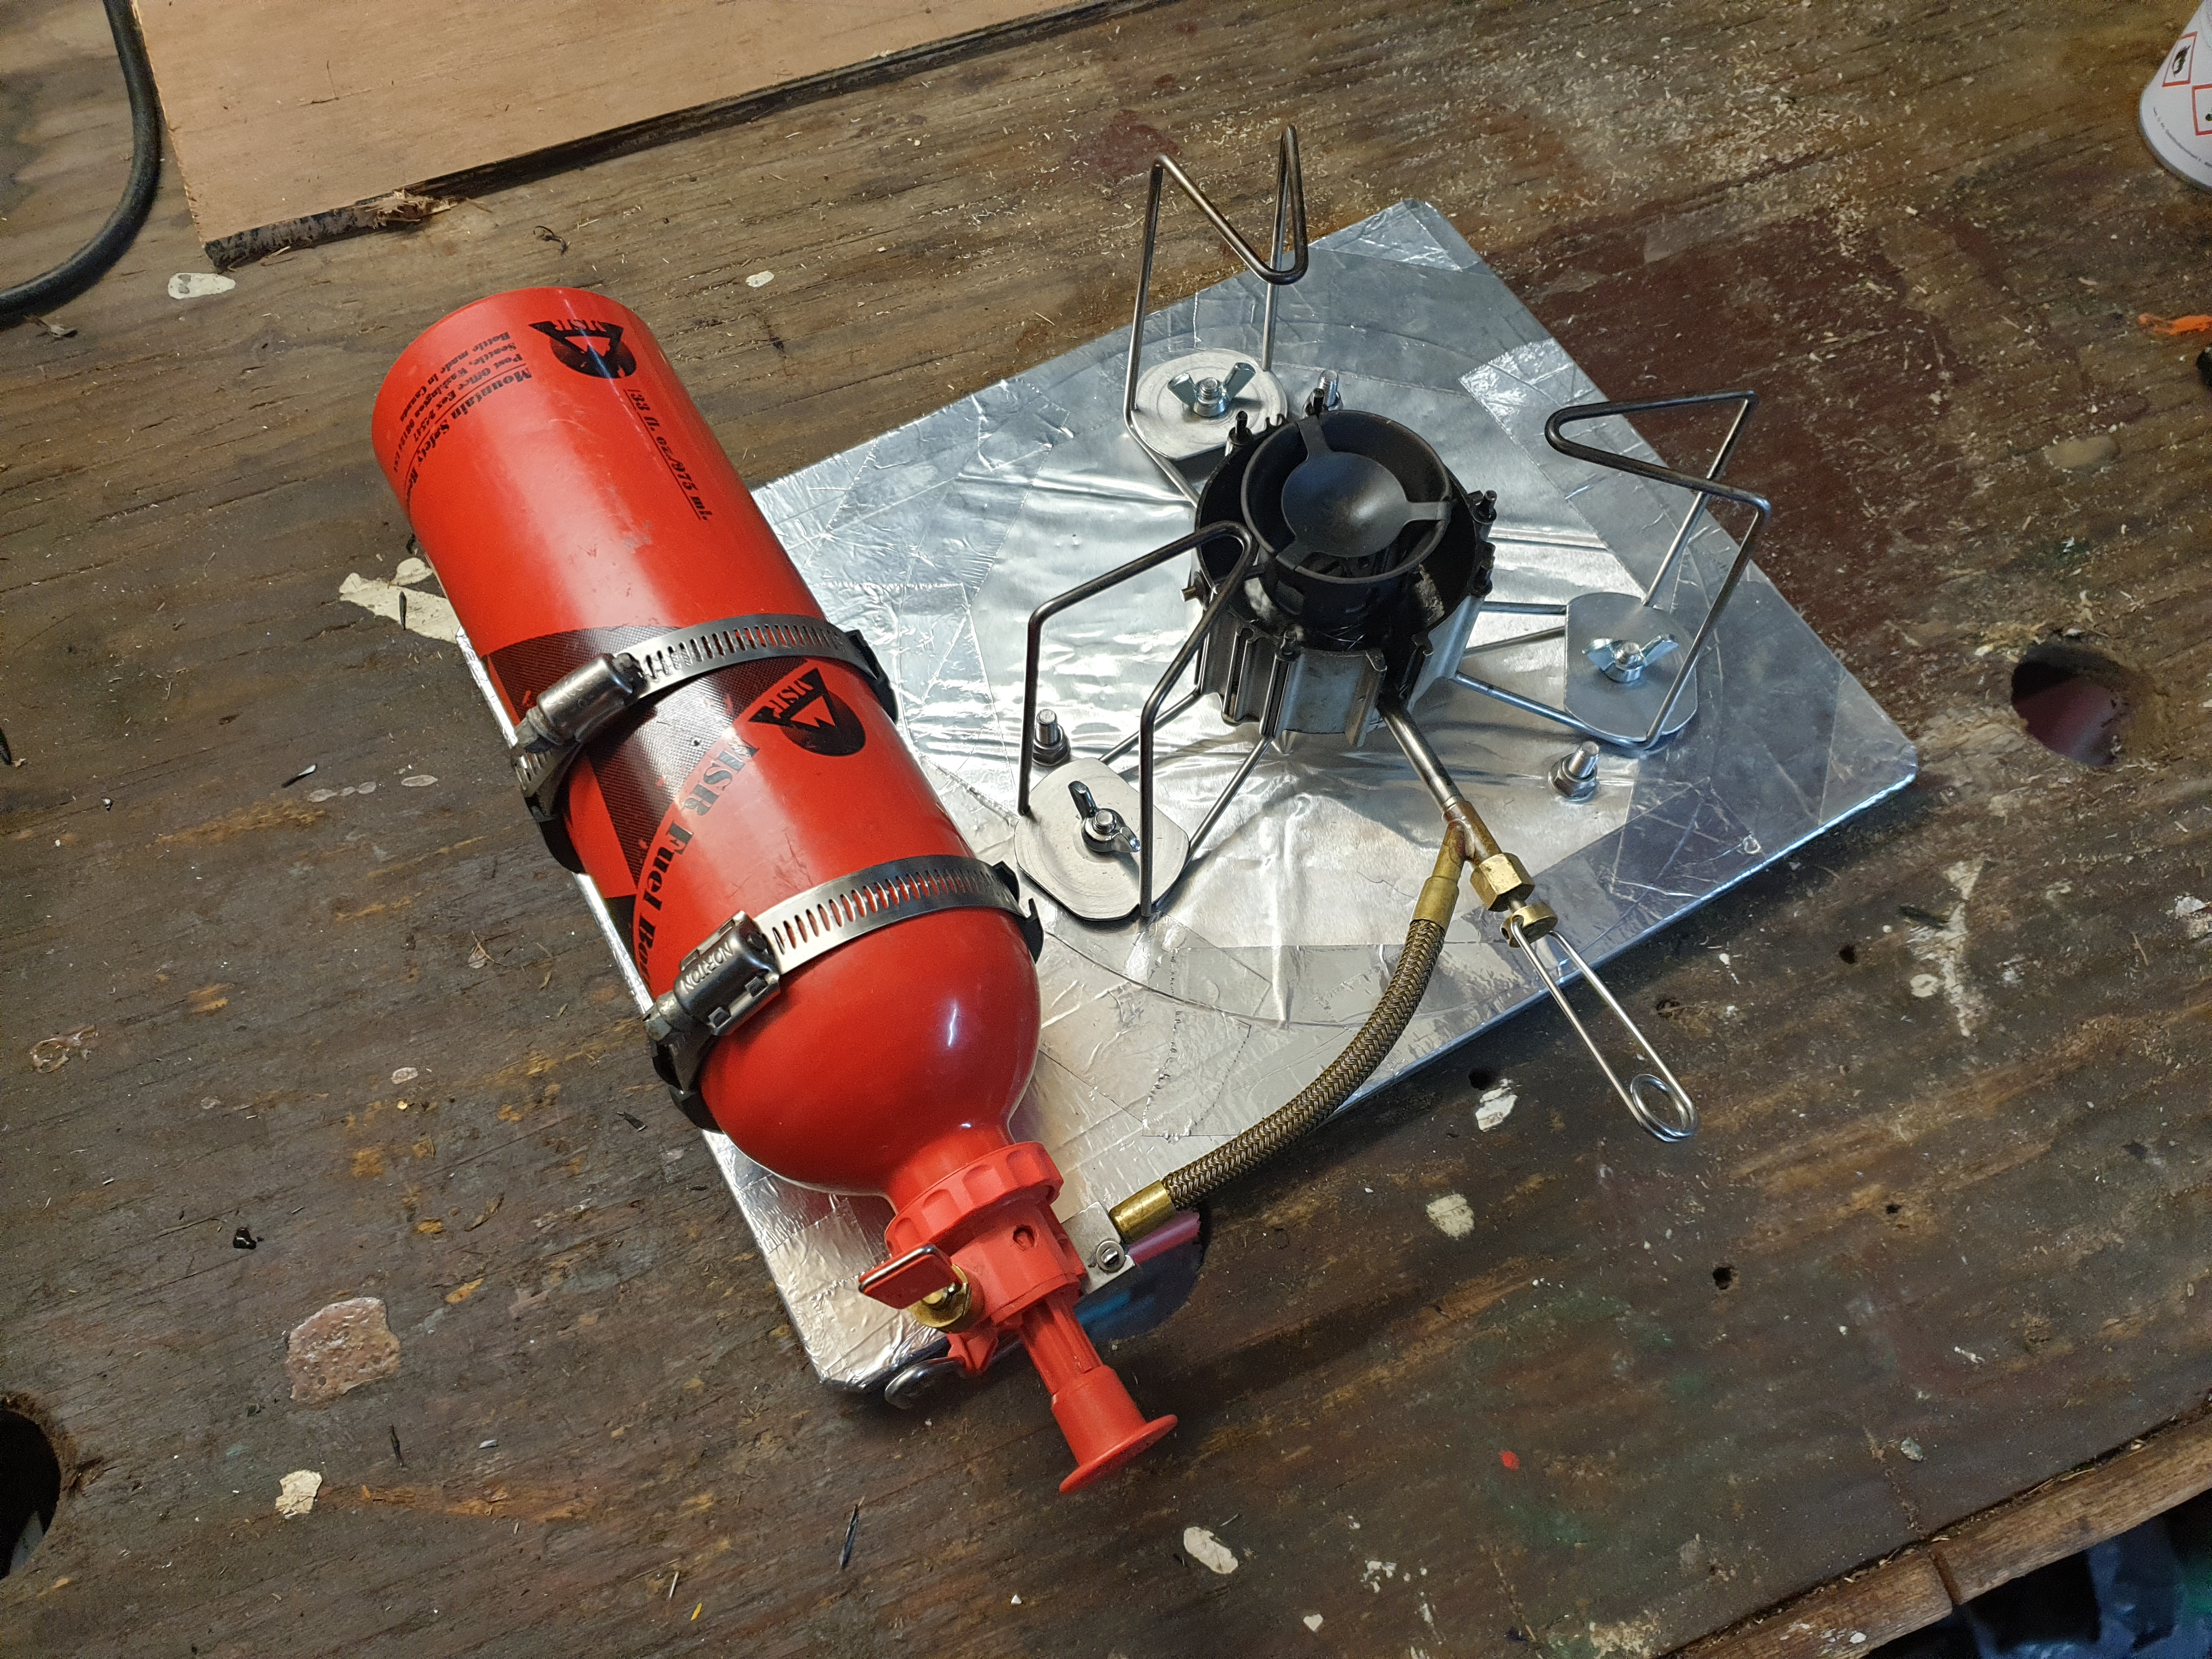 MSR Dragonfly and fuel bottle mounted onto the stove board